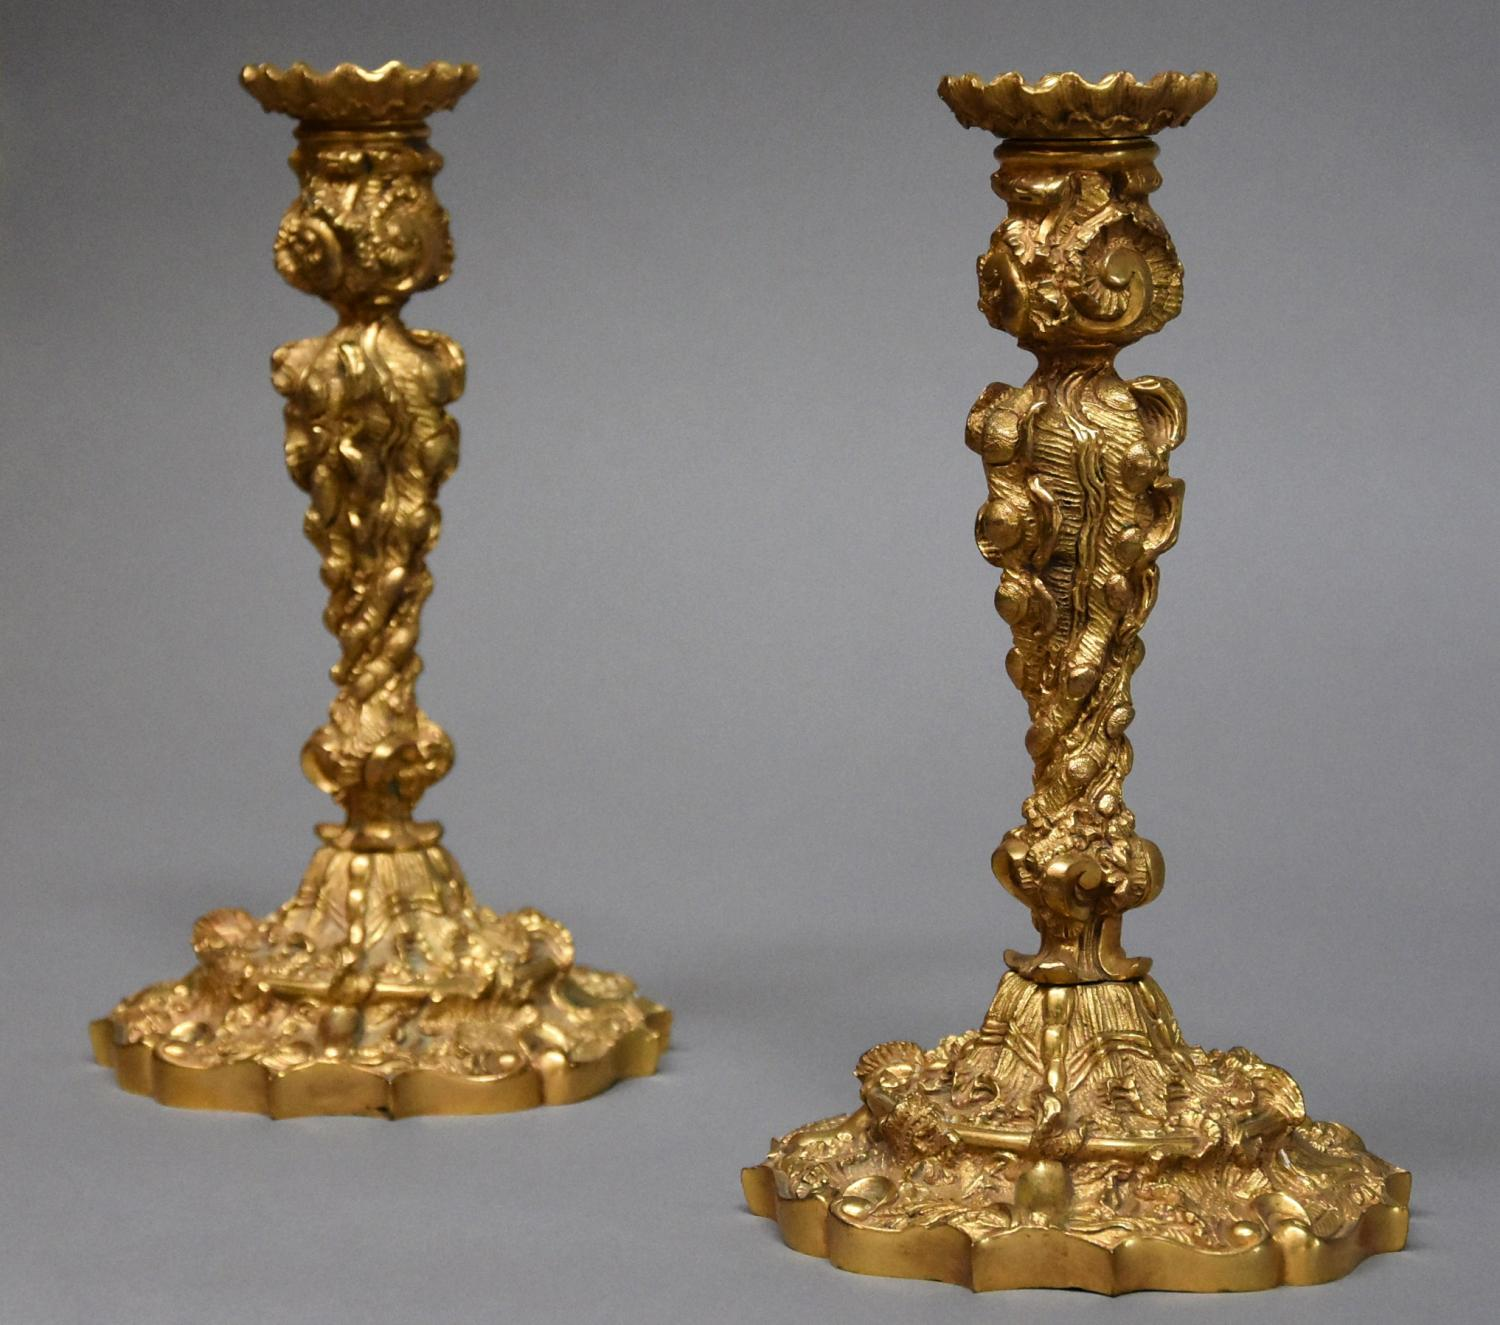 Pair of Rococo style ormolu candlesticks